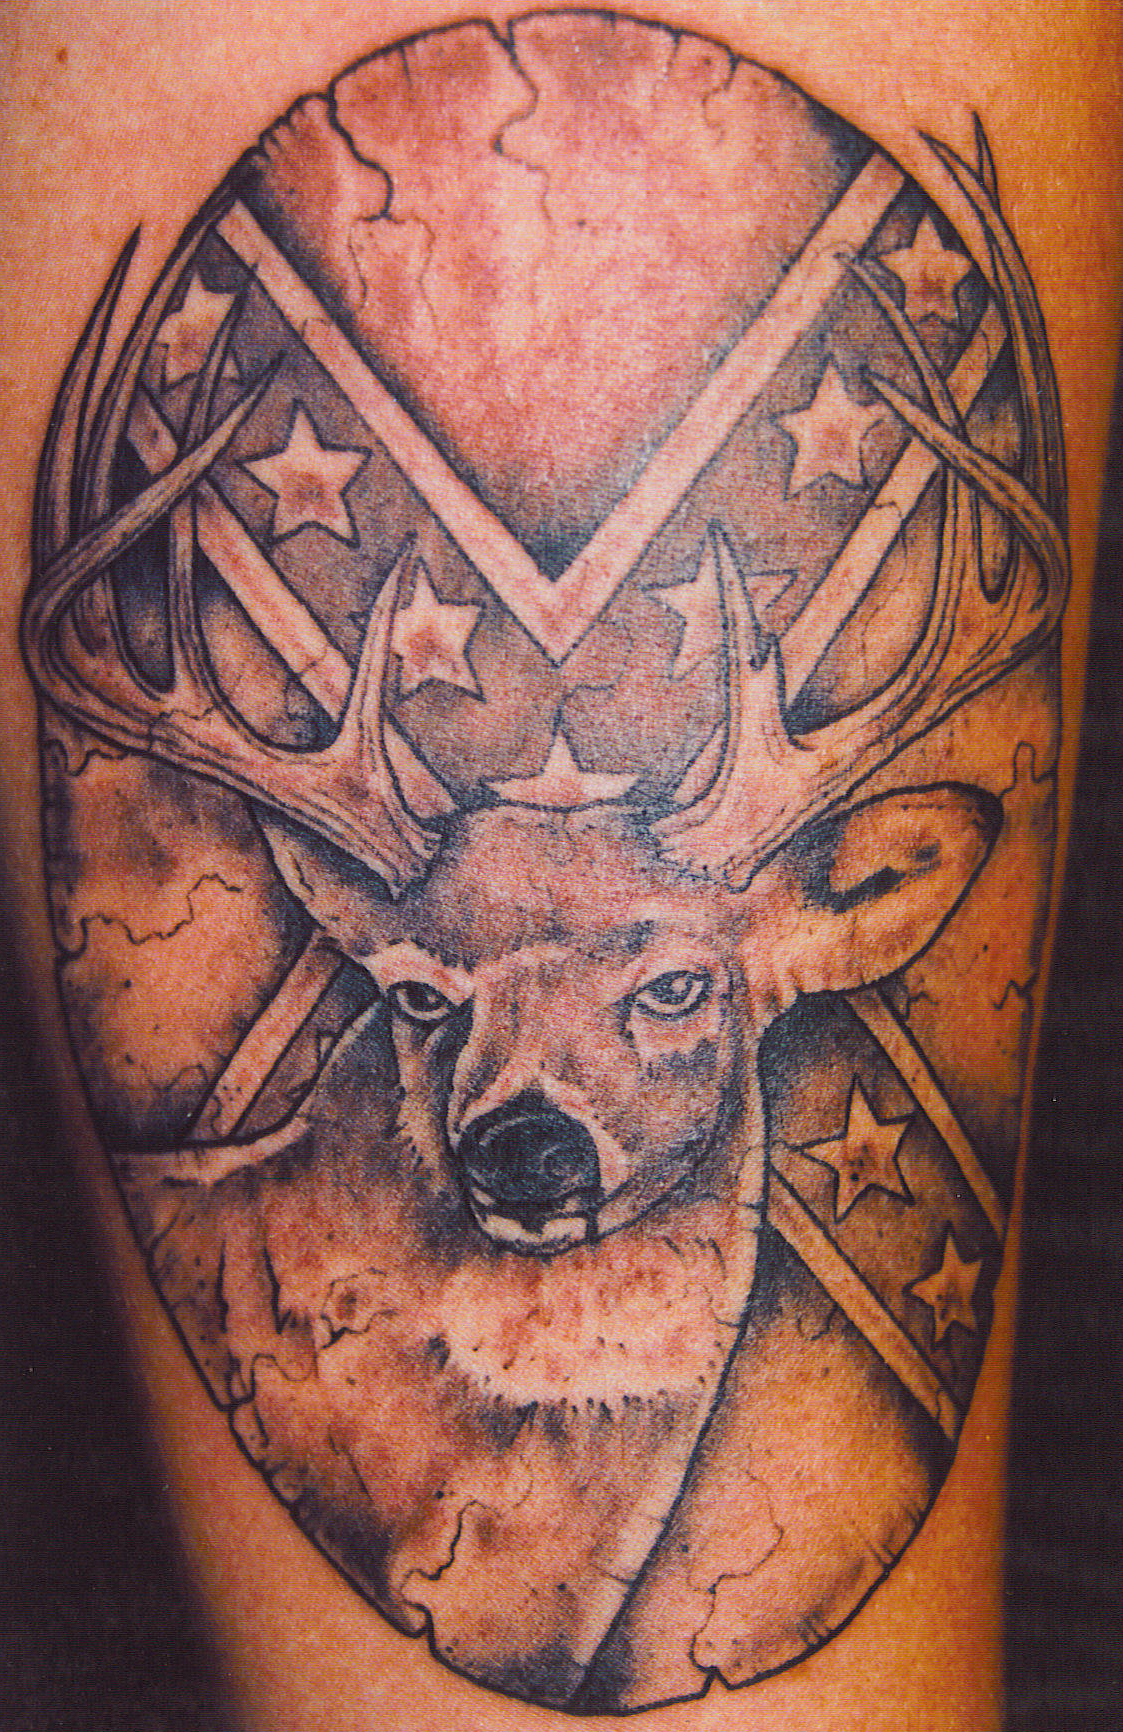 tribal tattoos chest meaning with Deer  Tattoos Meaning For  Ideas and Designs, You Tattoos